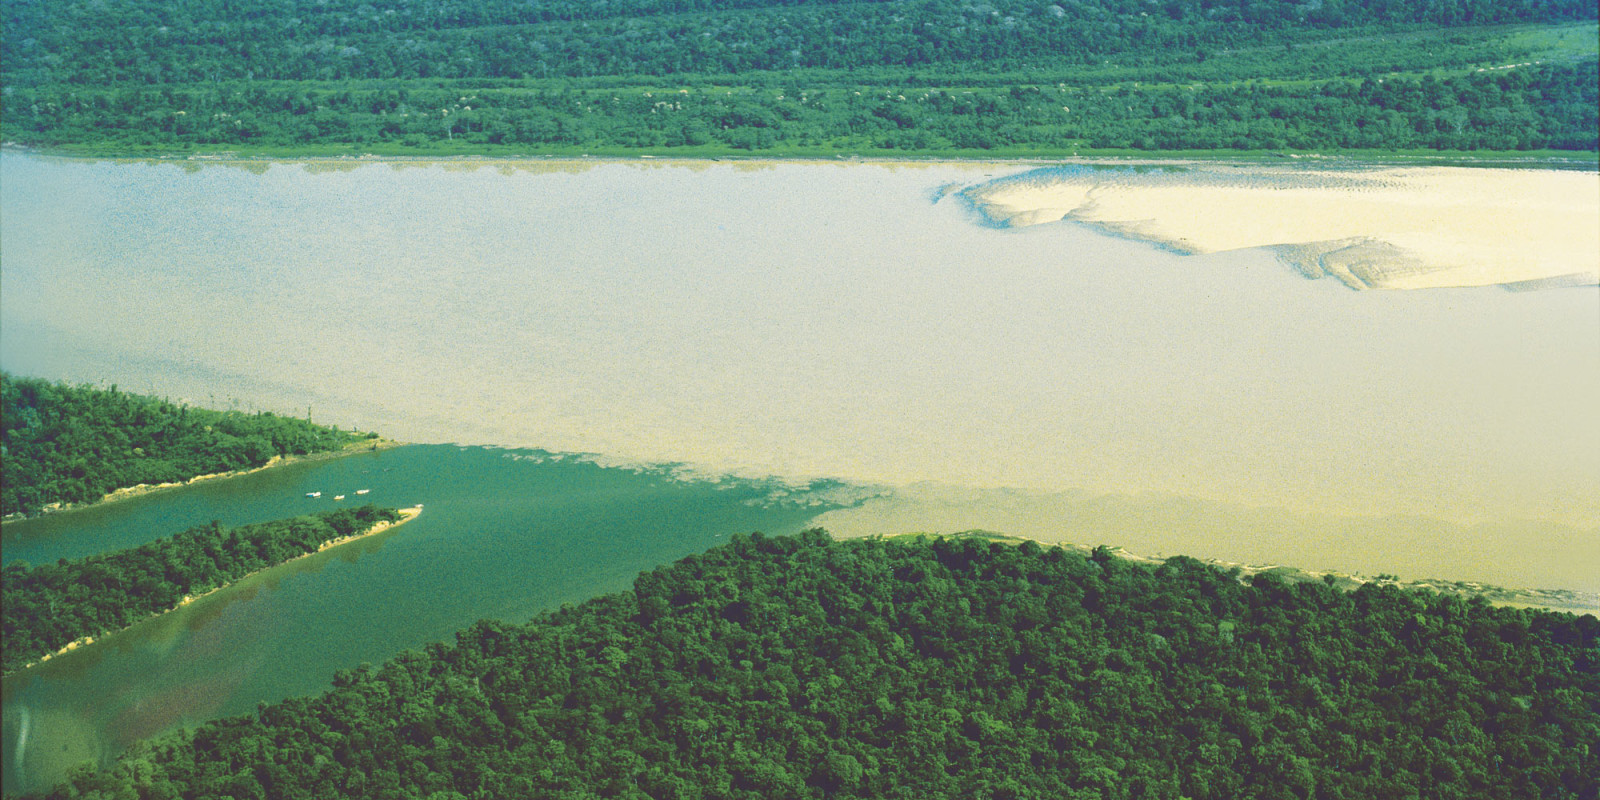 River Channel | Amazon Waters